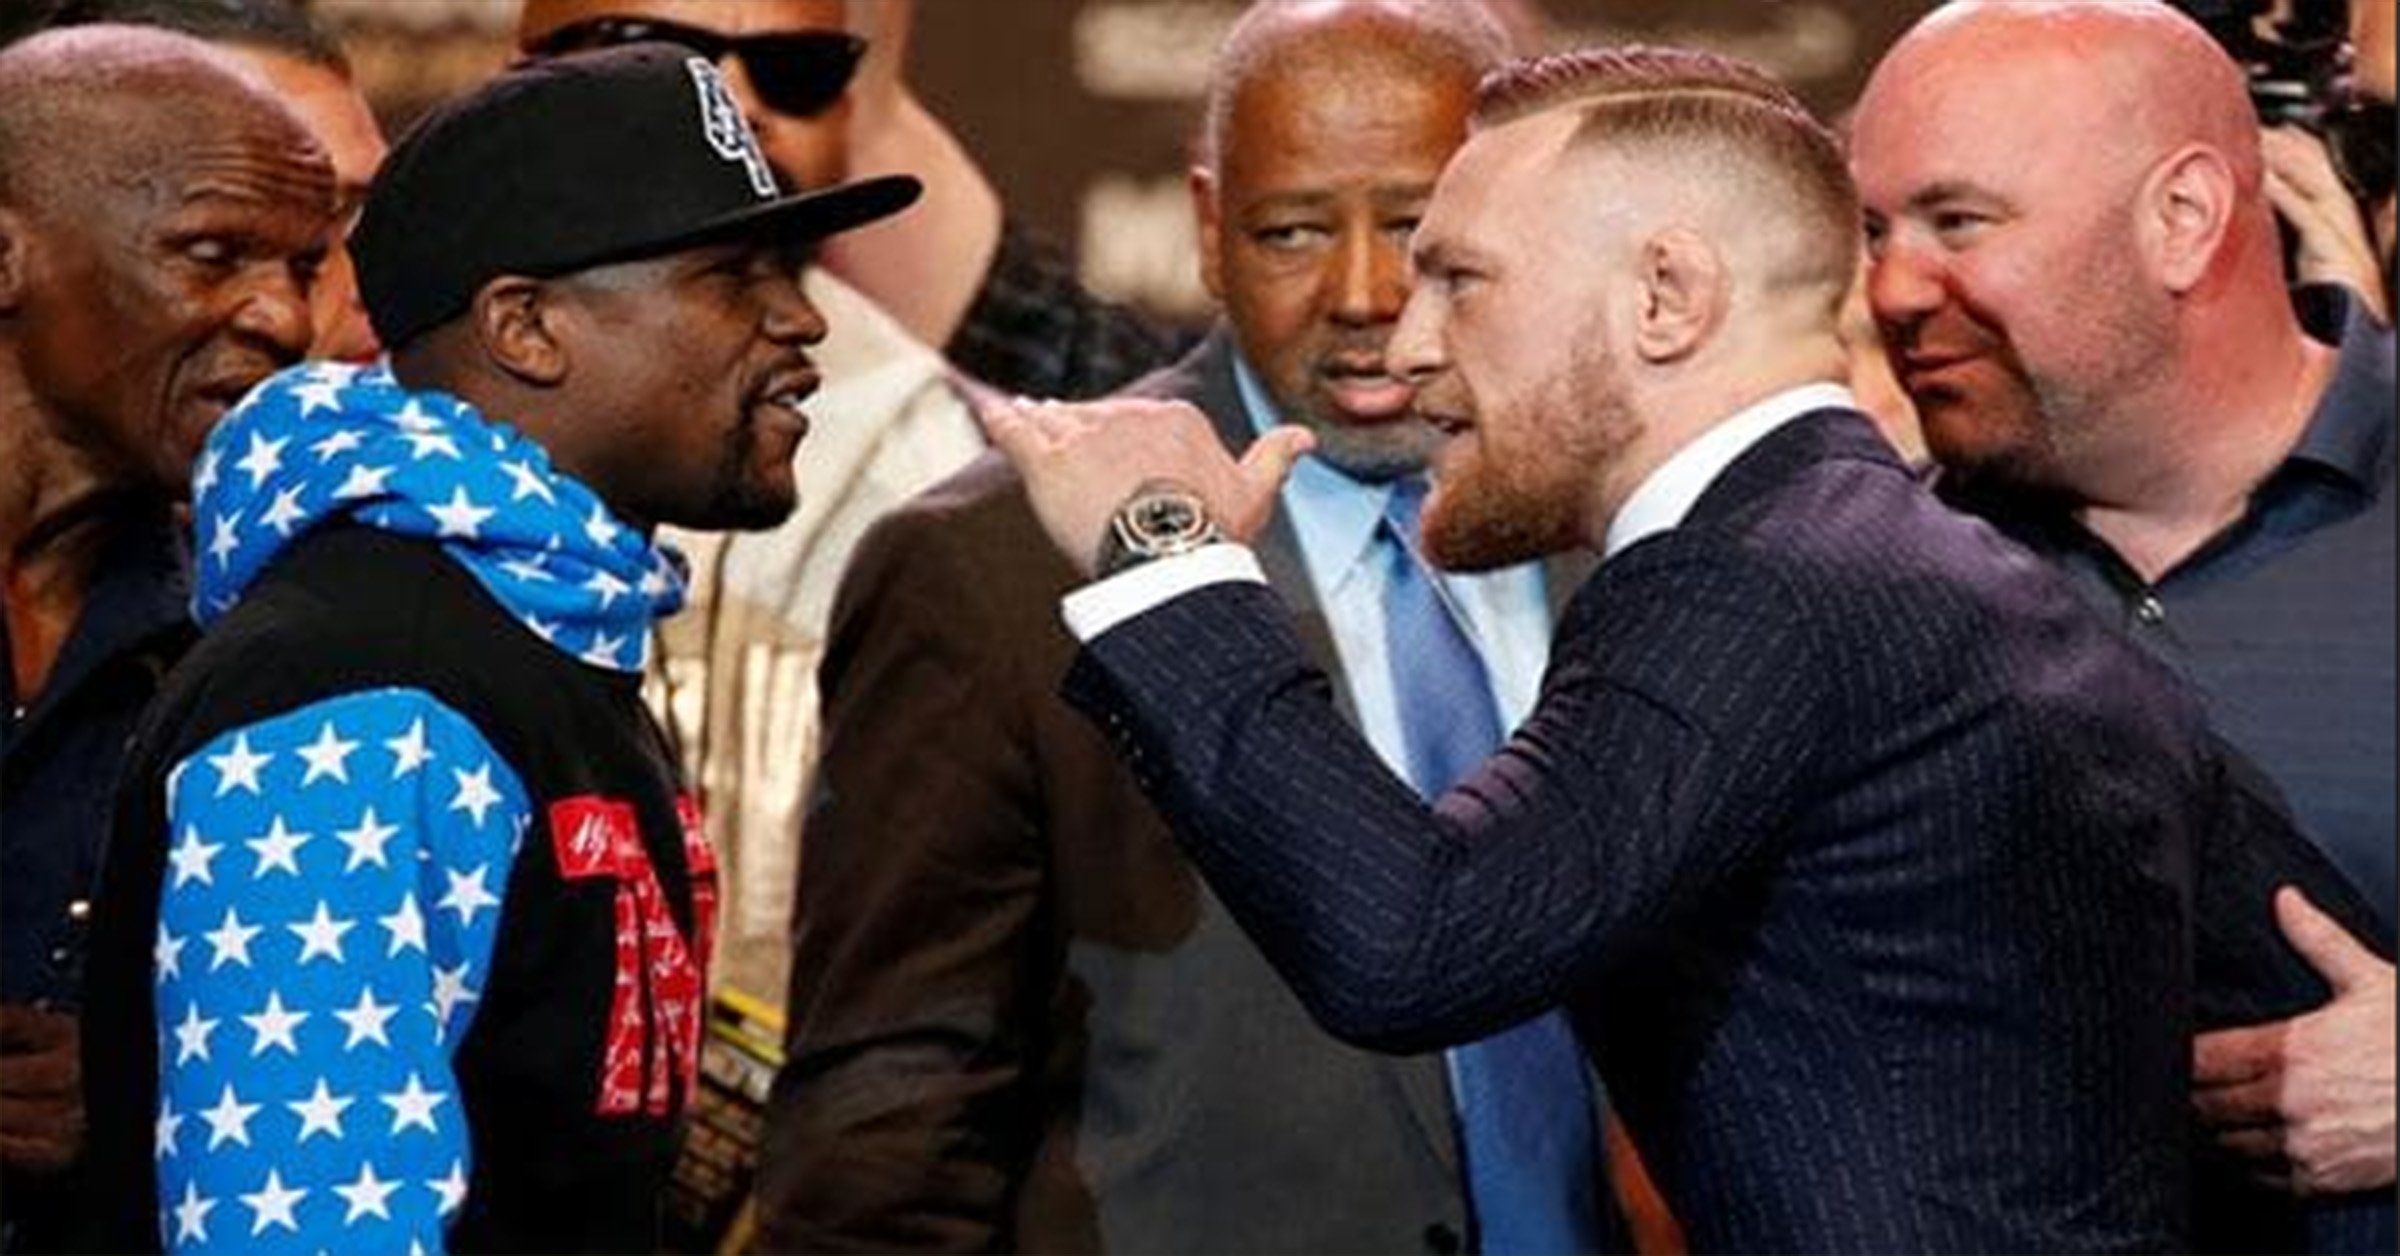 WATCH: The Final McGregor vs Mayweather Press Conference Live From Las Vegas